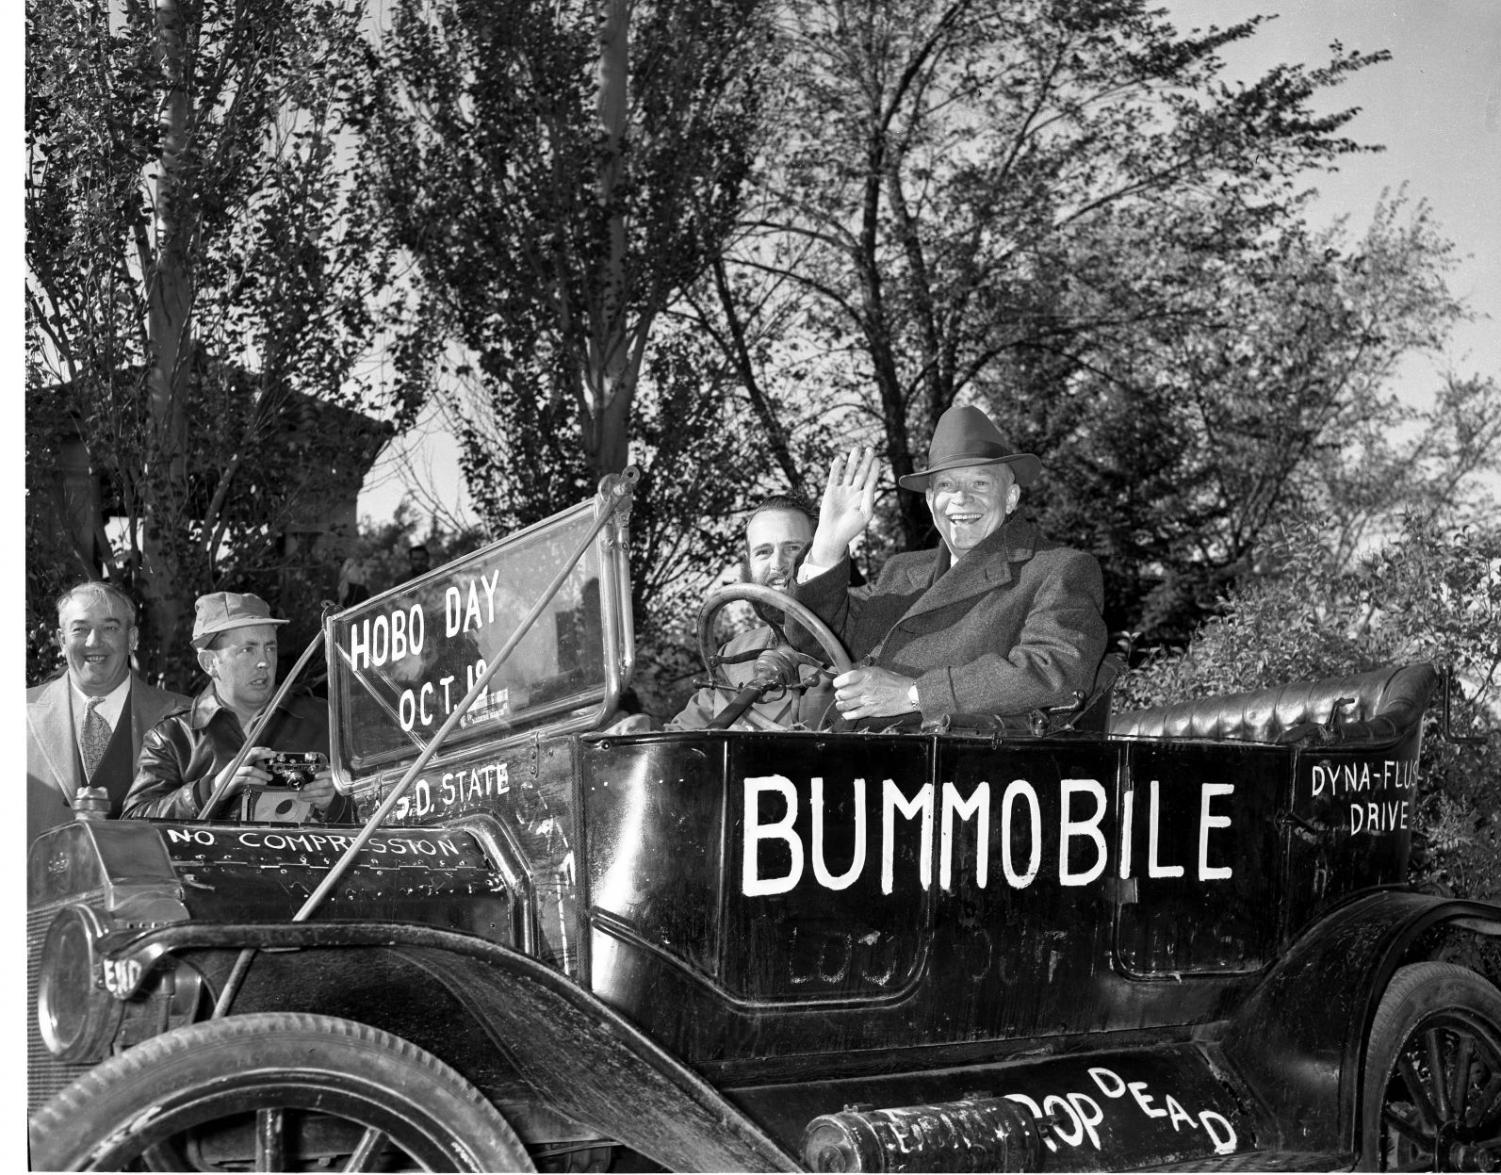 One of the Bummobile's most well-known passengers is President Dwight Eisenhower. He attended the 1952 Hobo Day during his election campaign.